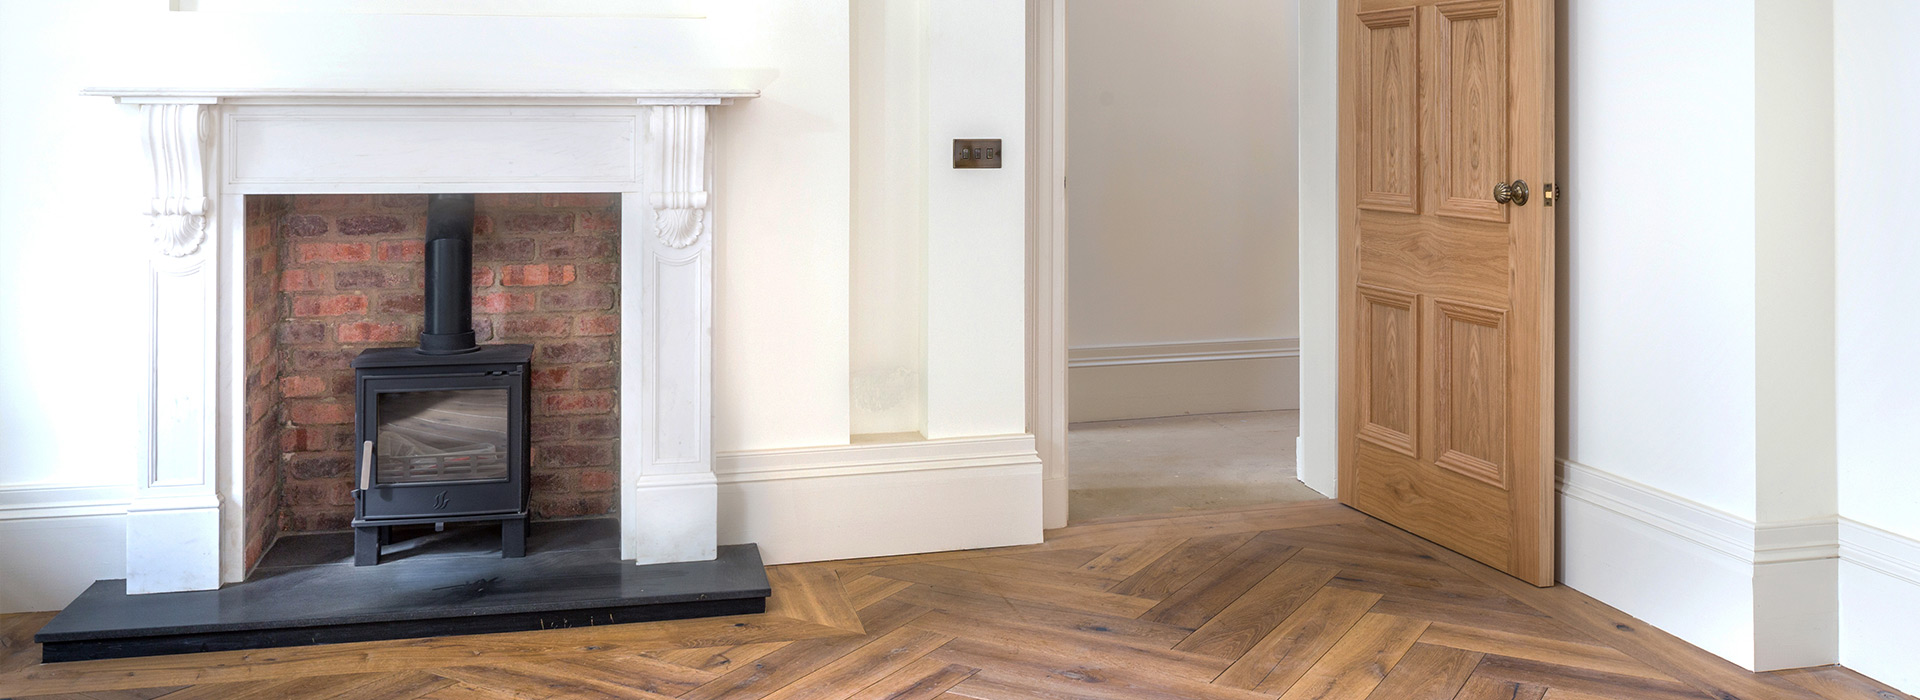 Herringbone floor and Oak door